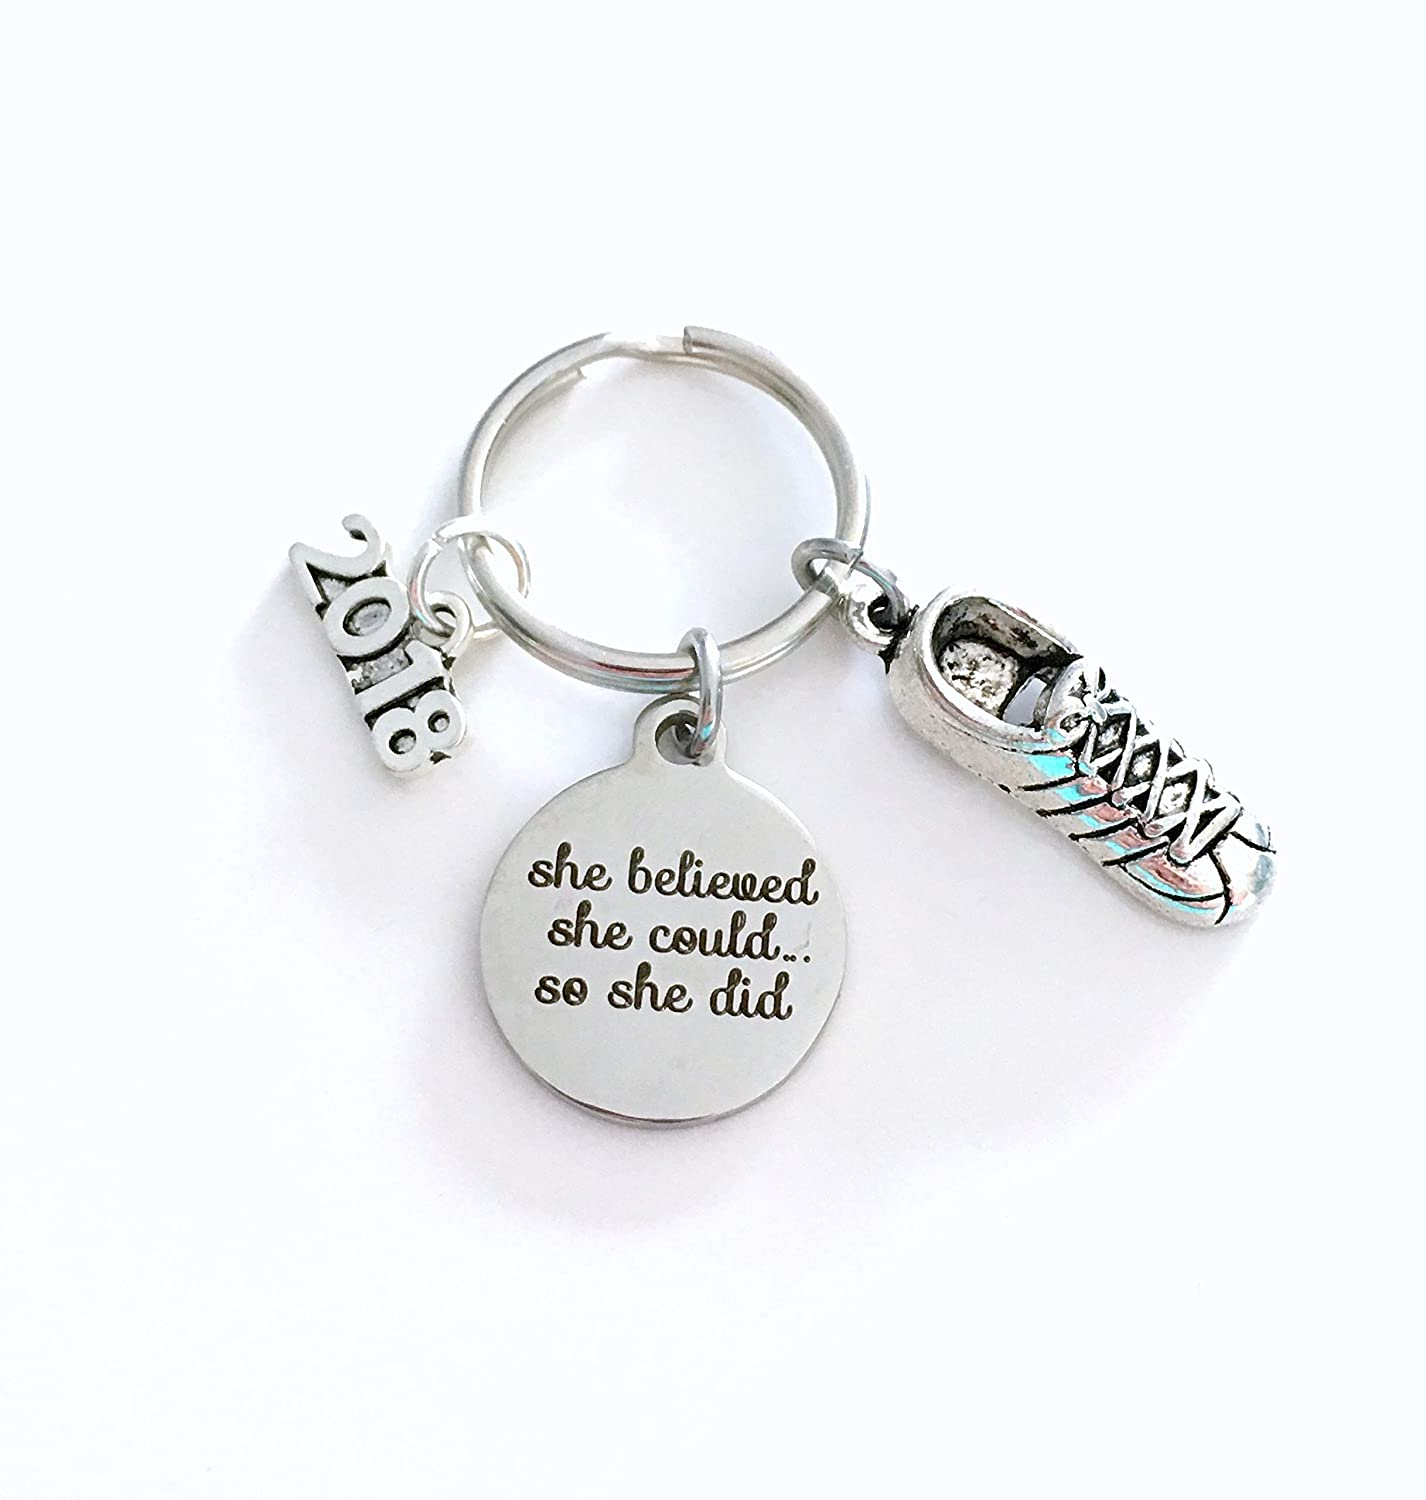 Running Key chain, Cross Country Keychain, Gift for Marathon Runner 2018